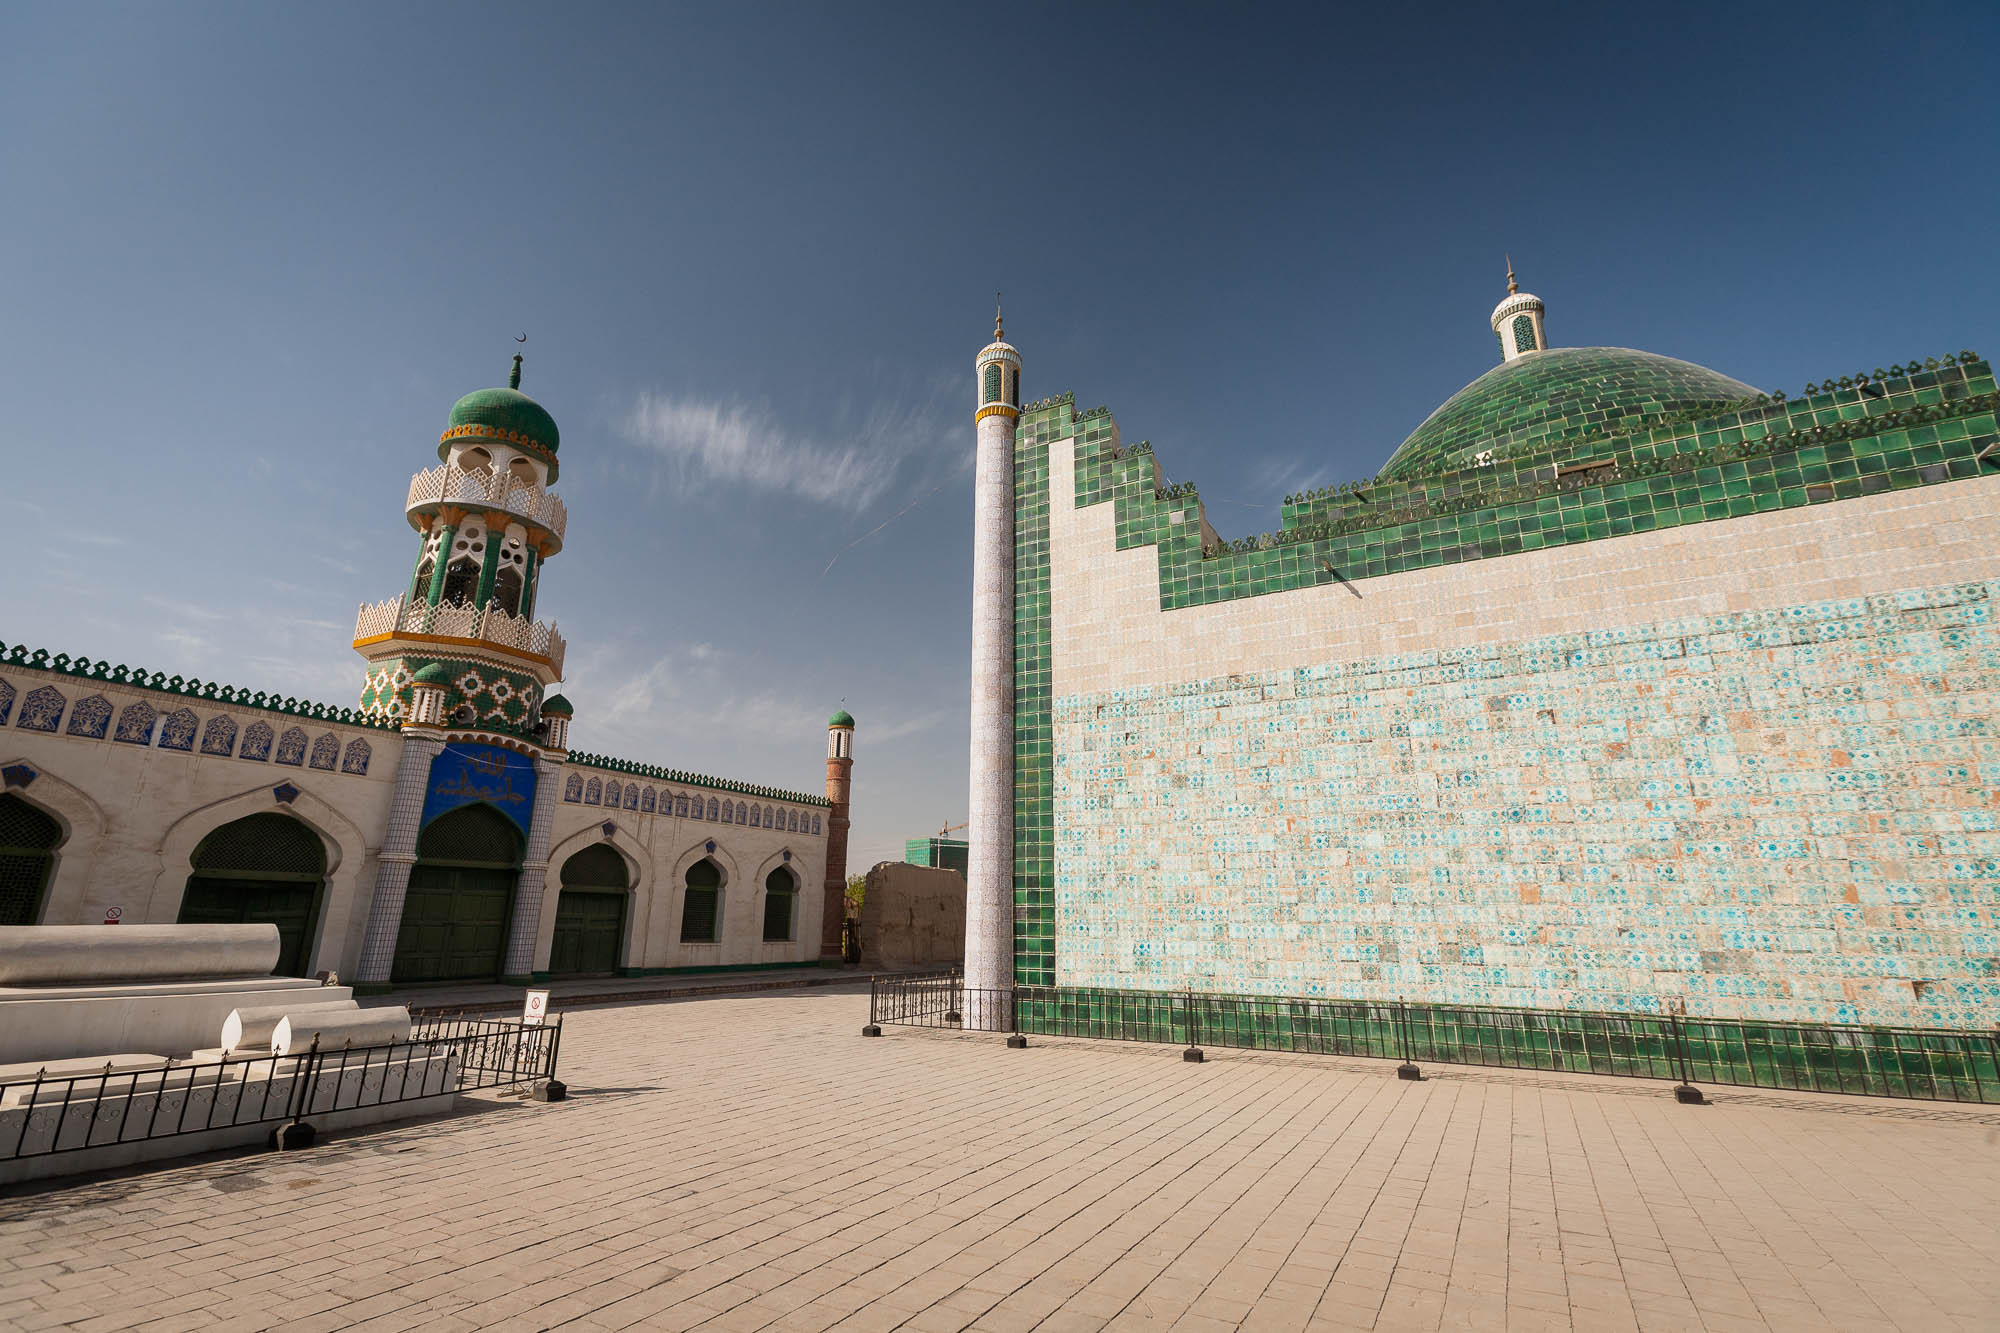 Hami Uyghur Royal family tomb